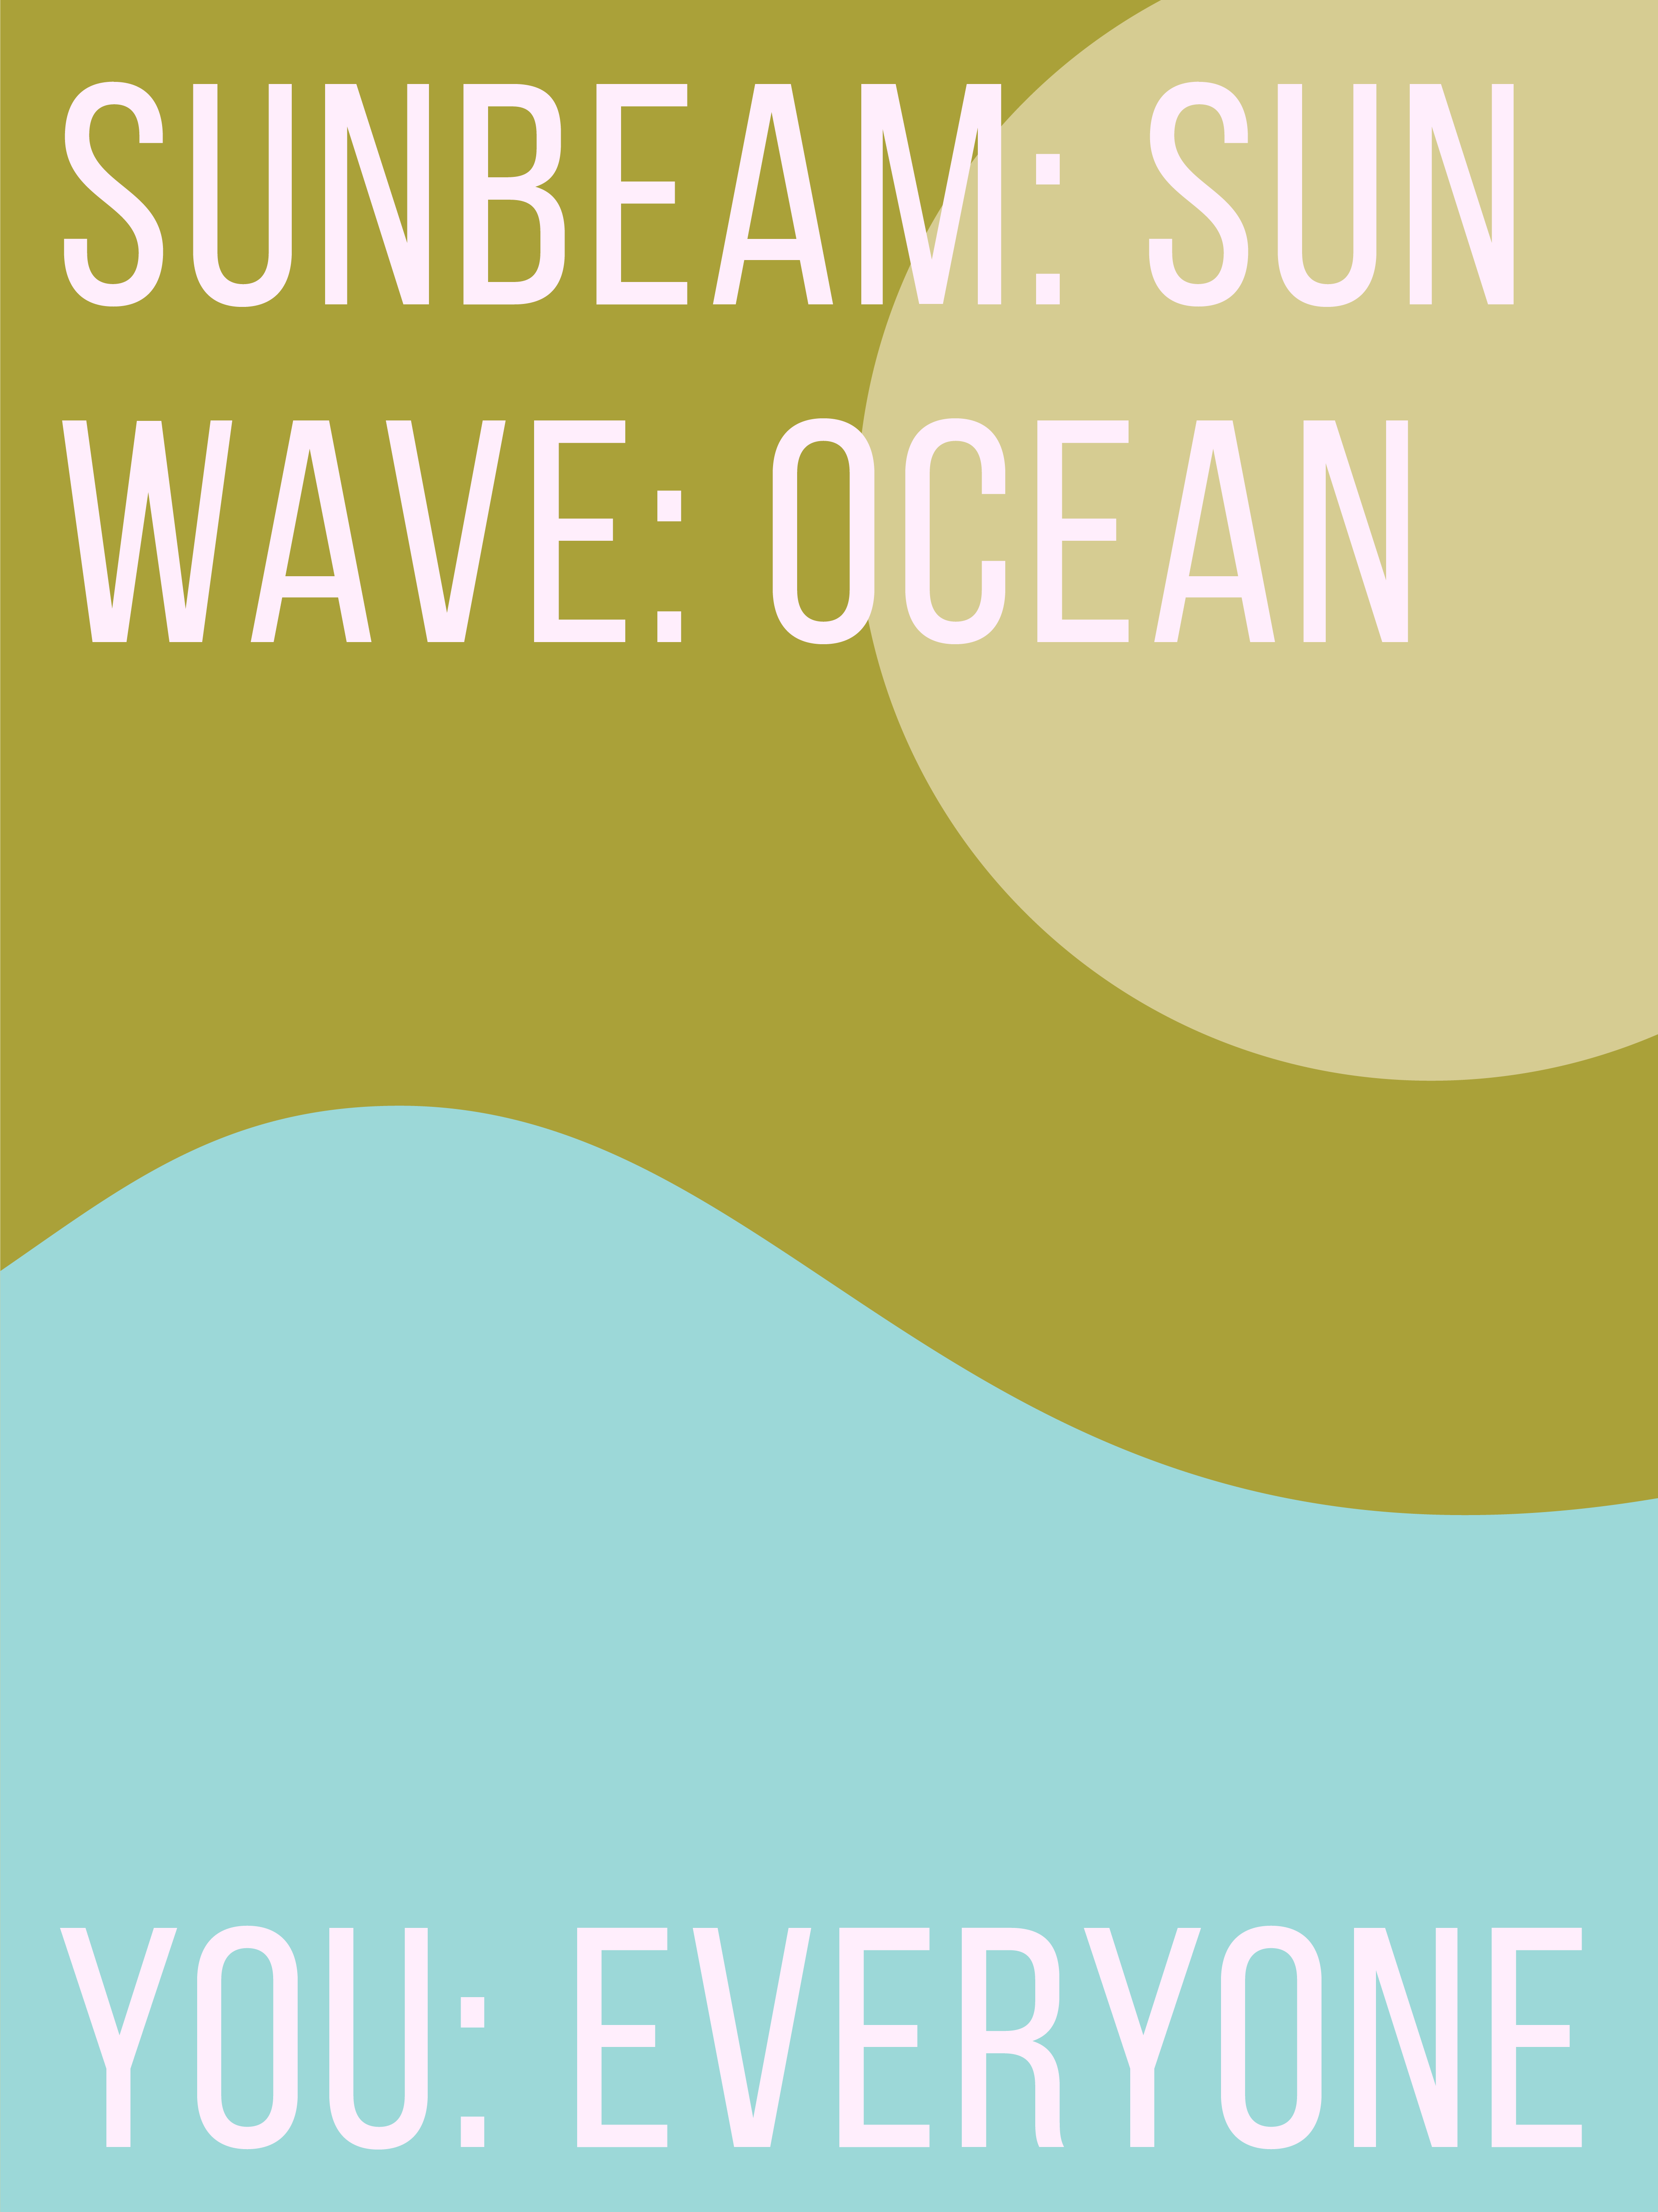 type-based poster stating a sunbeam is the sun, a wave is the ocean, and you are everyone